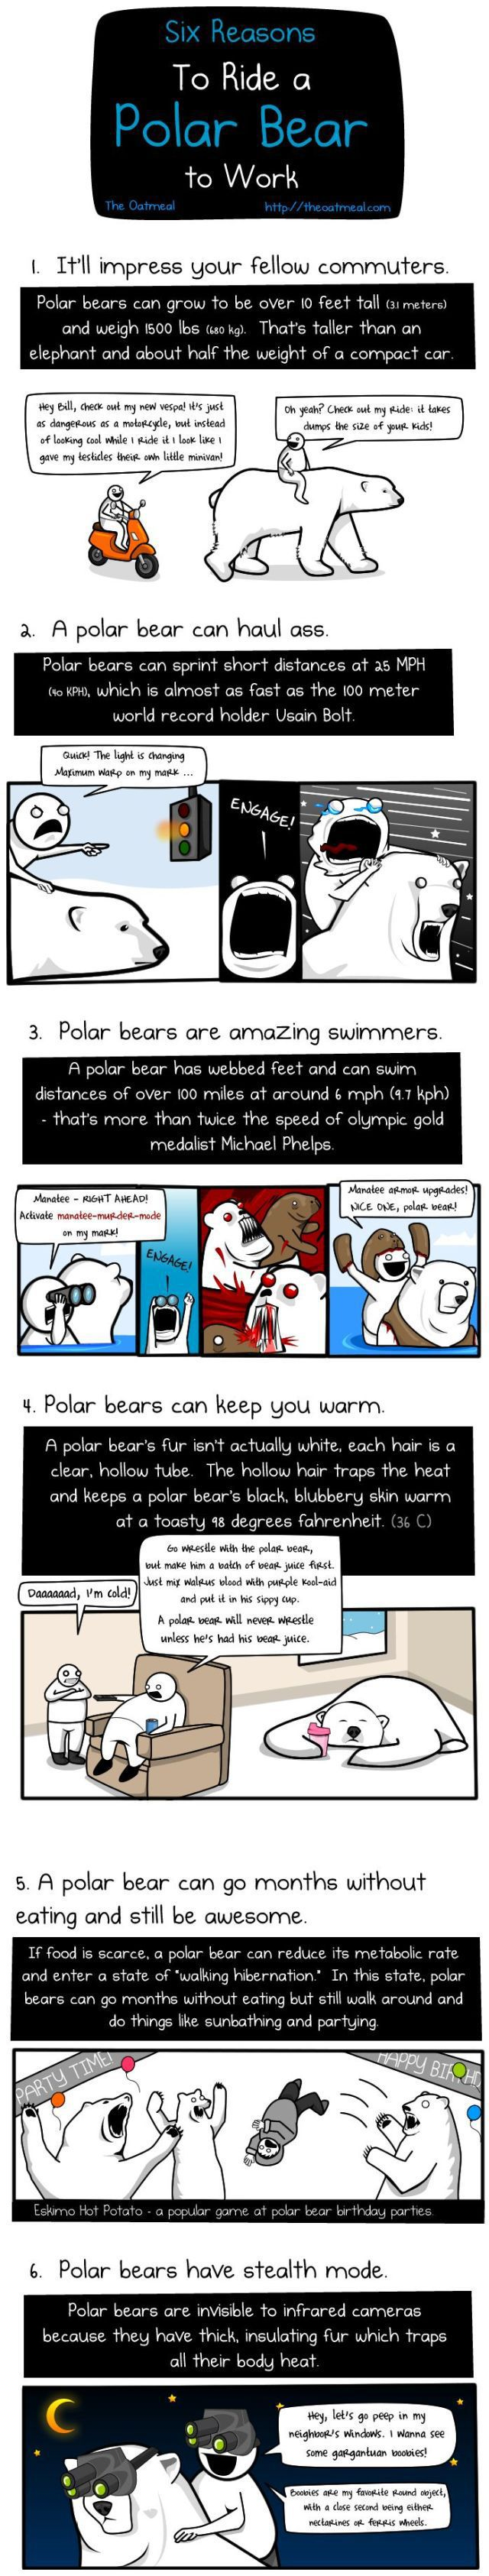 Why You Should Ride a Bear to Go to Work! (1 pic)